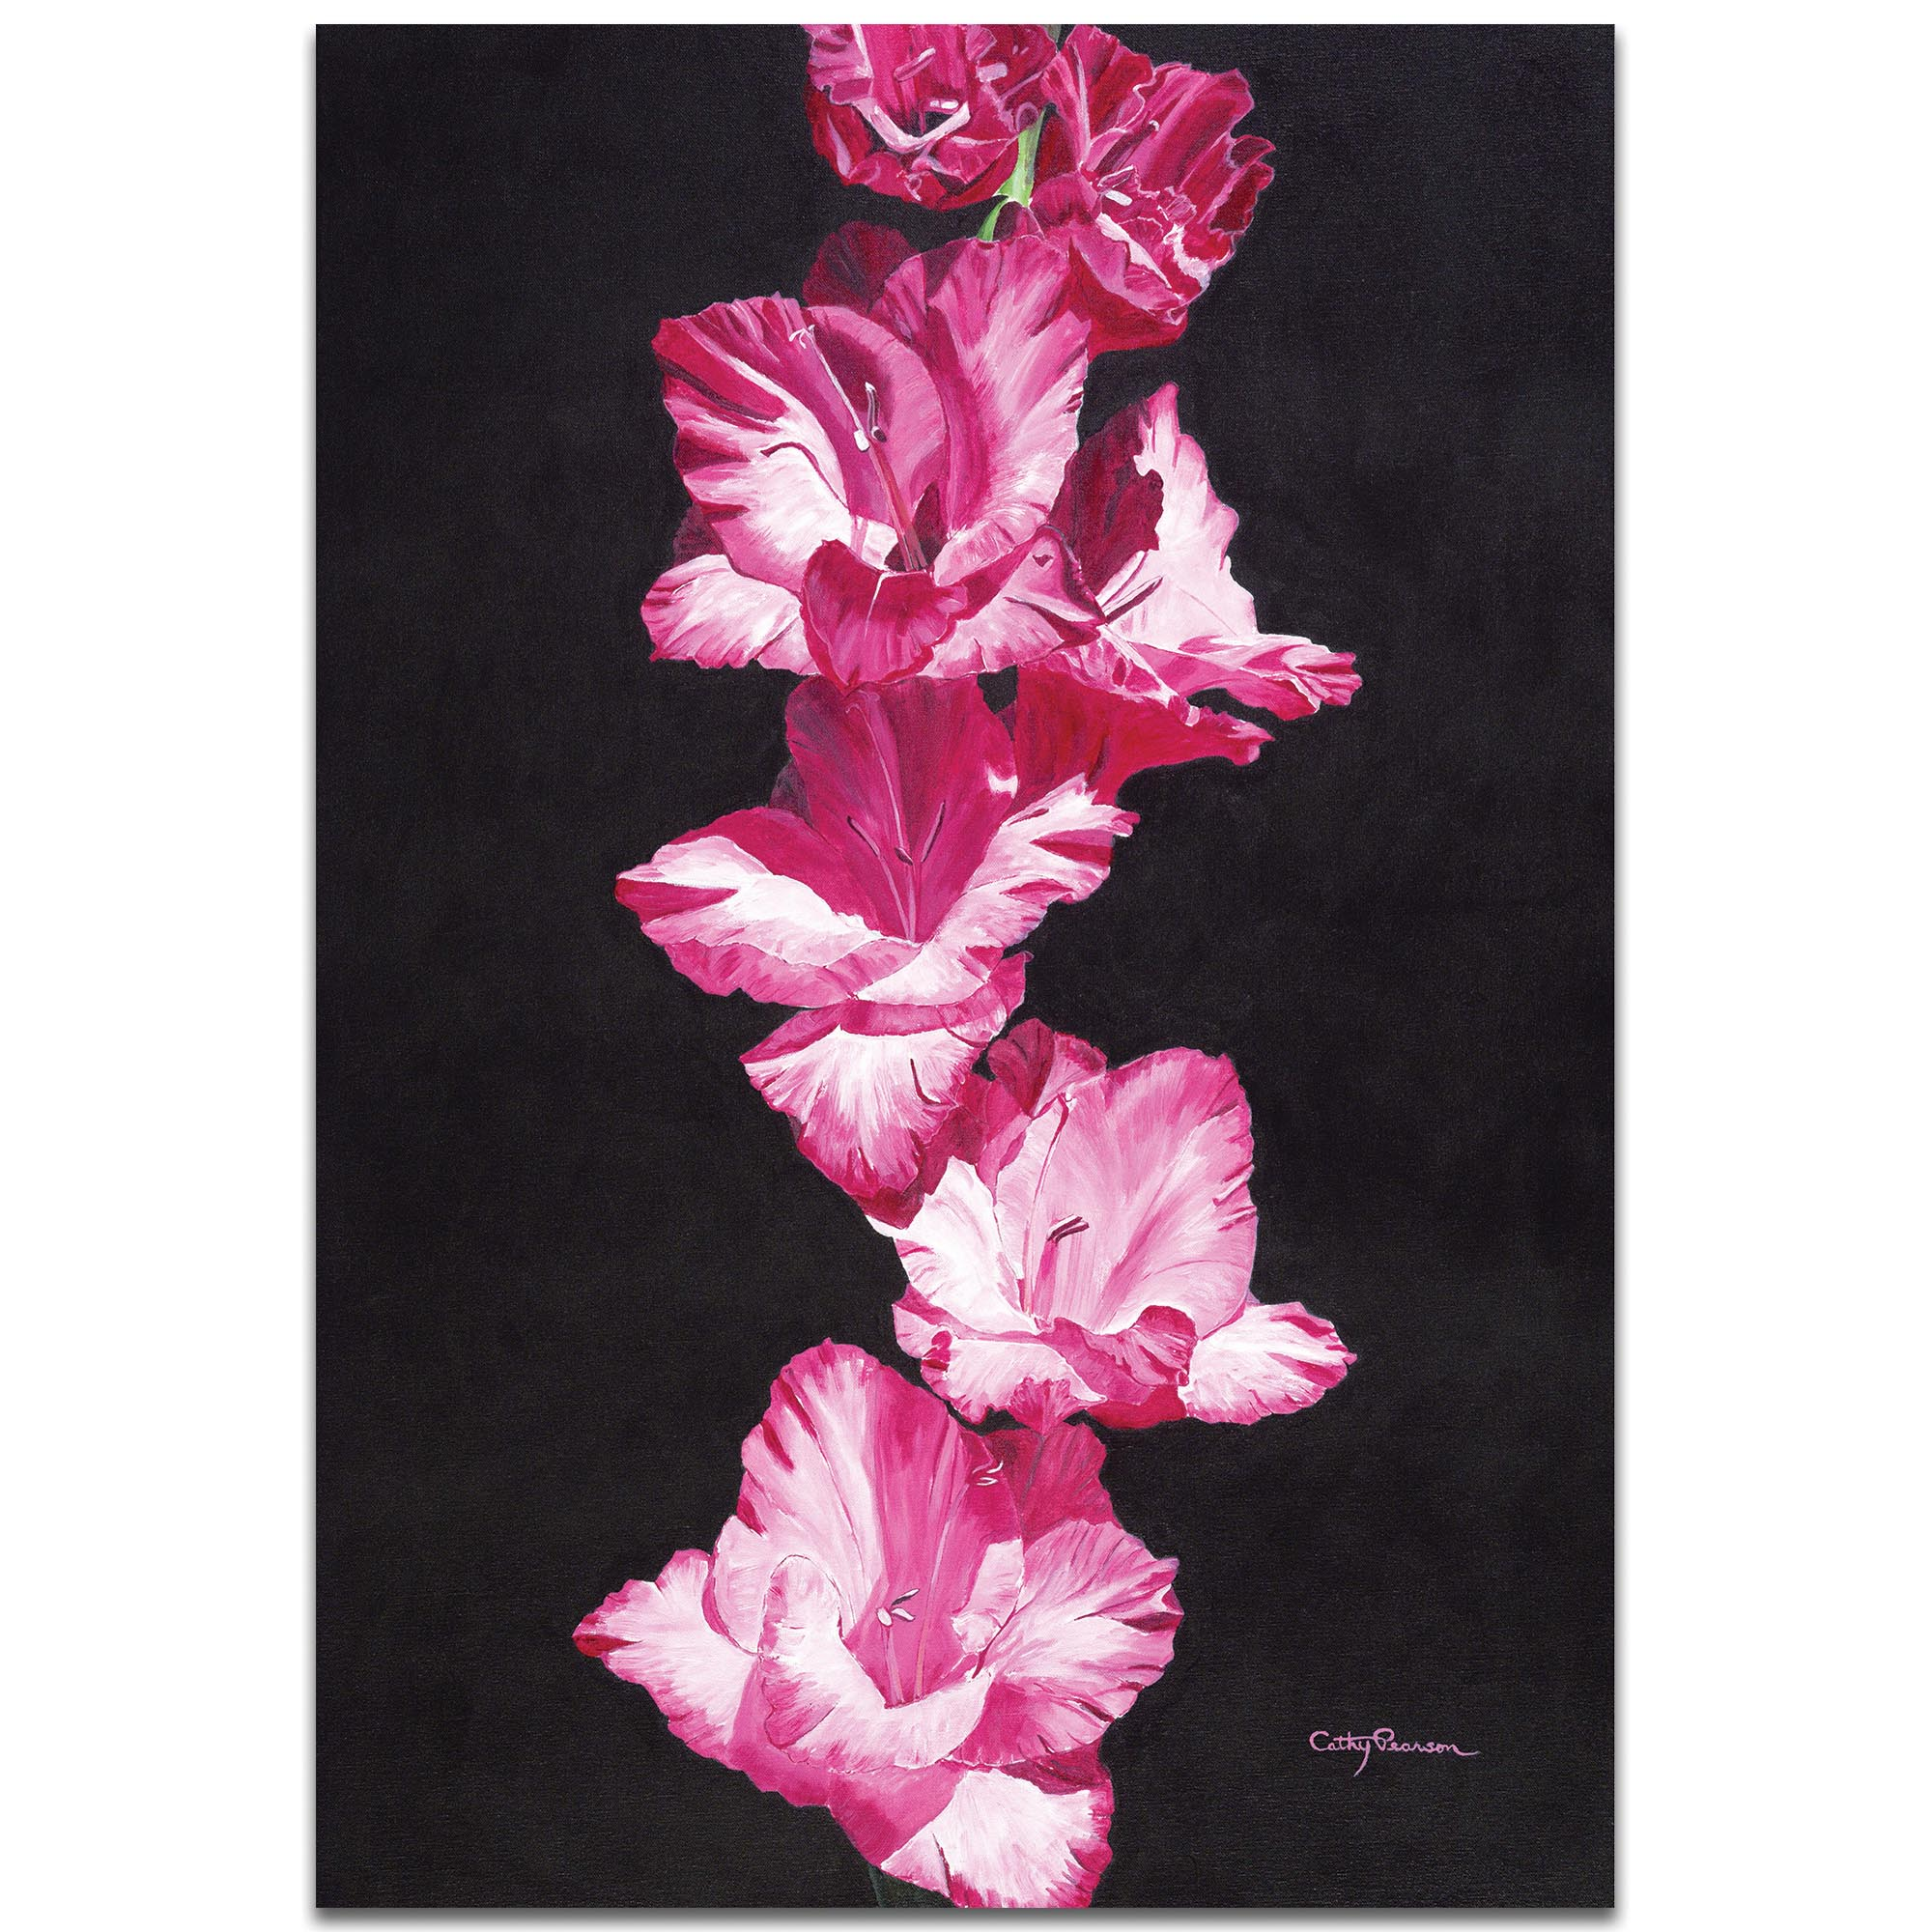 Traditional Wall Art 'Bright Pink Glads' - Floral Decor on Metal or Plexiglass